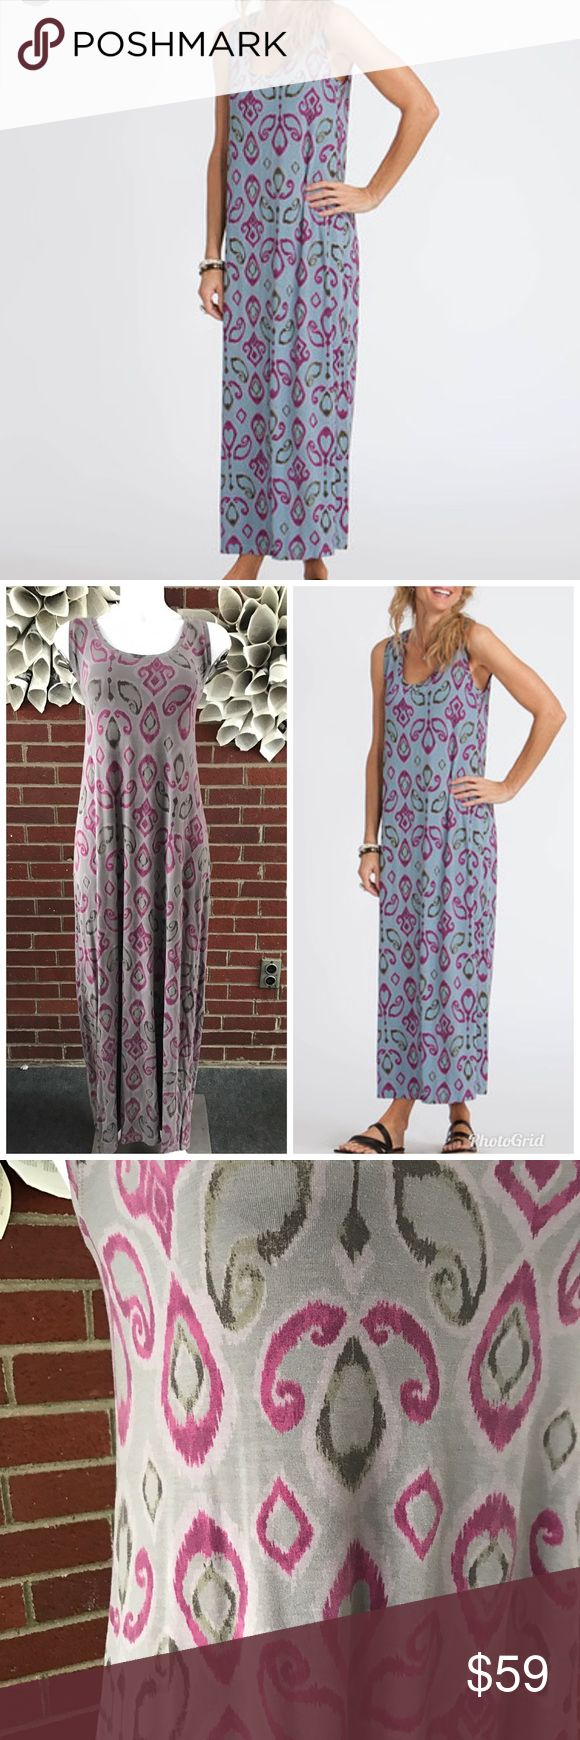 NEW Fresh Produce Tapestry Staple Maxi Dress Please see photos for all measure! Sorry I do not model/trade!! This item comes from a smoke free, pet friendly home!! No rips, holes or stains to note!! I ship Monday-Friday to ensure quick delivery (orders placed after 7am will not be processed until the following day). Orders placed Saturday/Sunday will not be processed until Monday morning :)! Thanks for shopping my closet! Y8 Fresh Produce Dresses Maxi